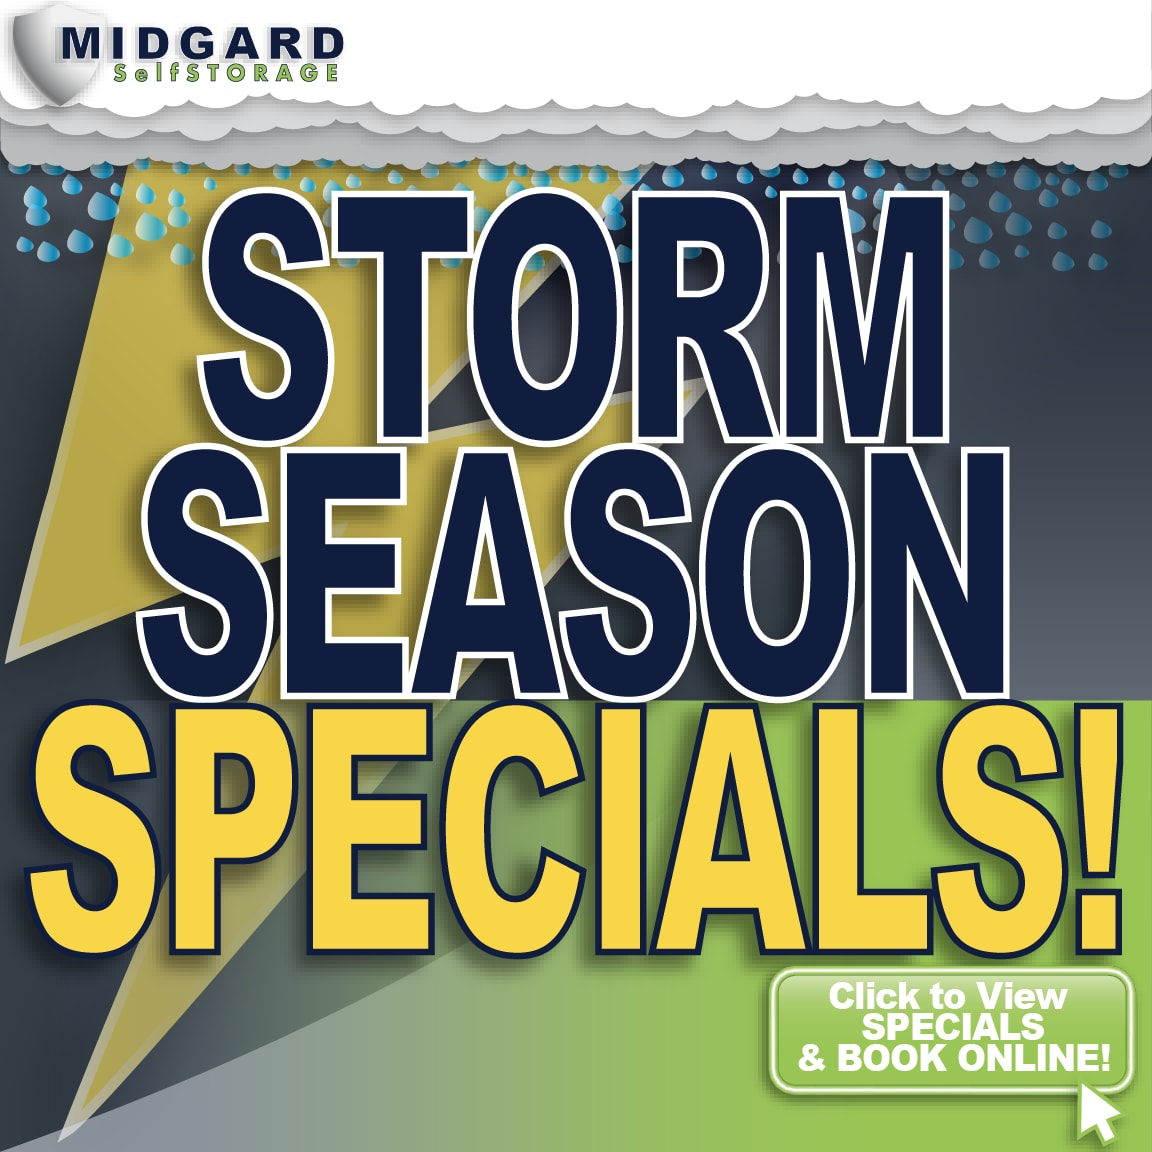 Special at Midgard Self Storage in Murfreesboro, Tennessee